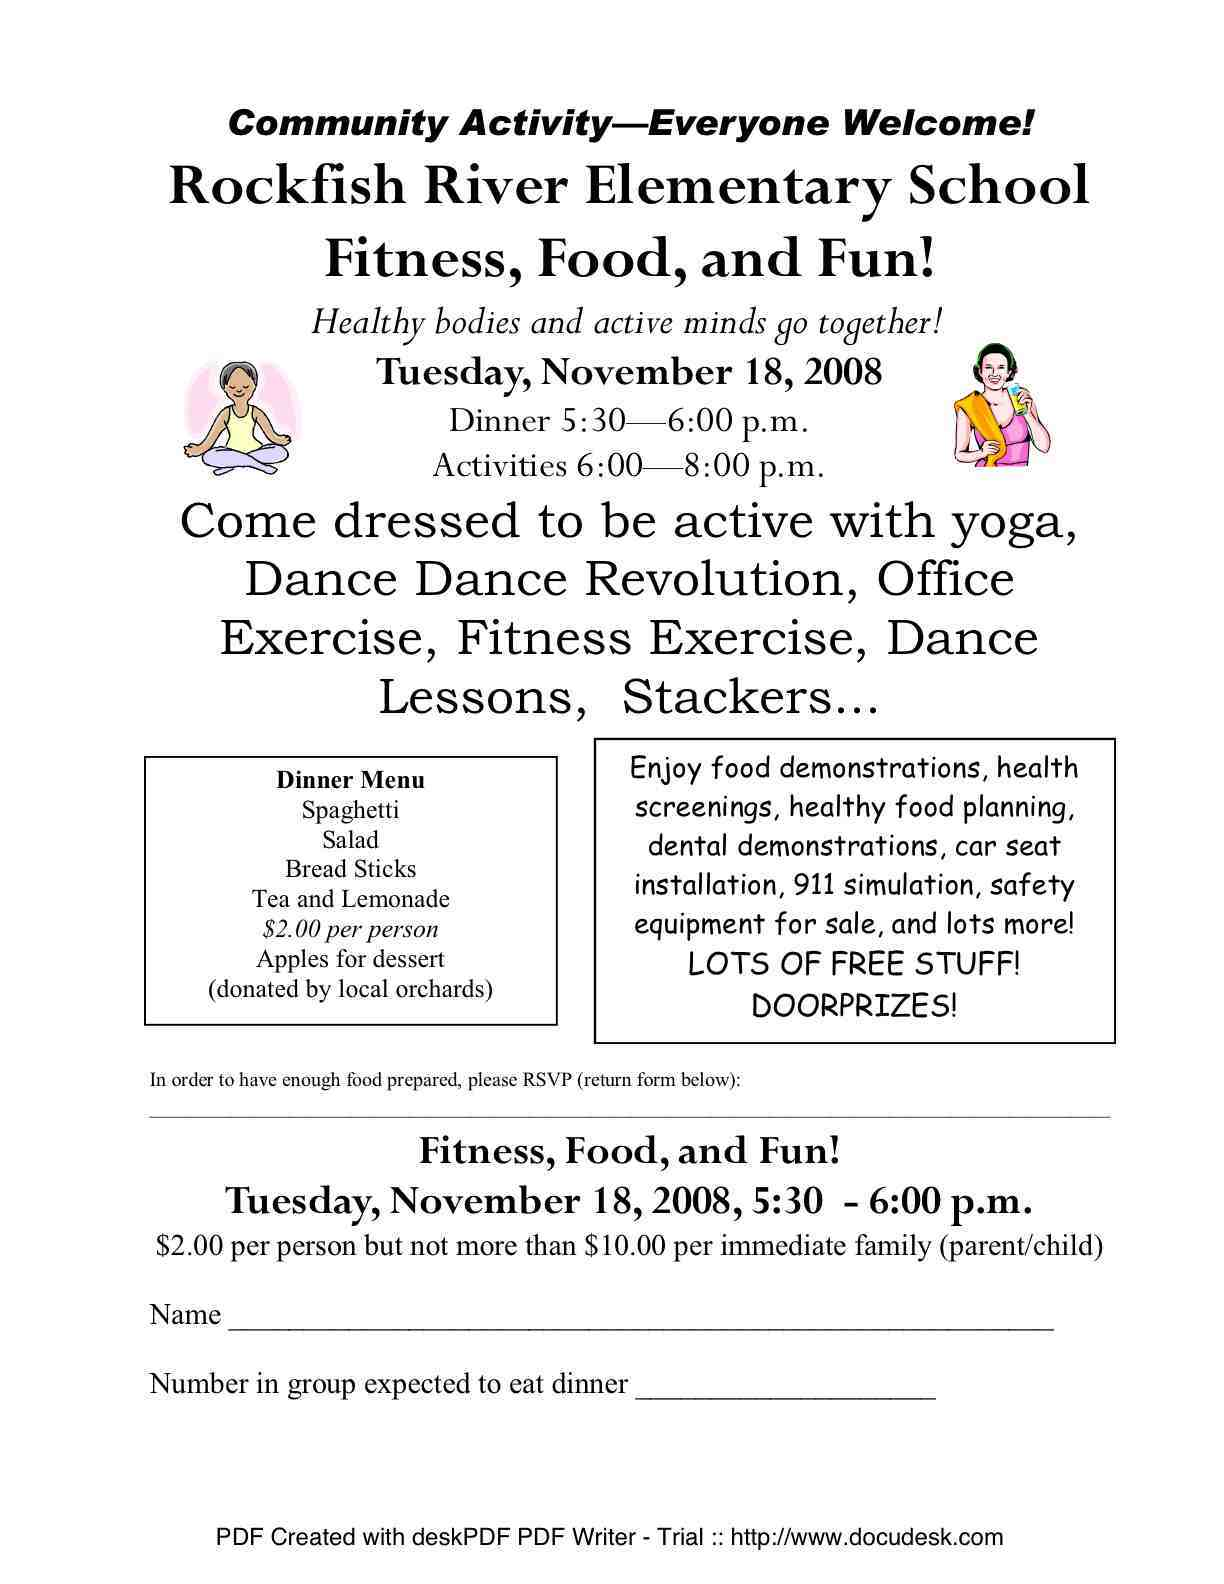 Rockfish River Elementary : Fitness, Food & Fun : November 18th 2008